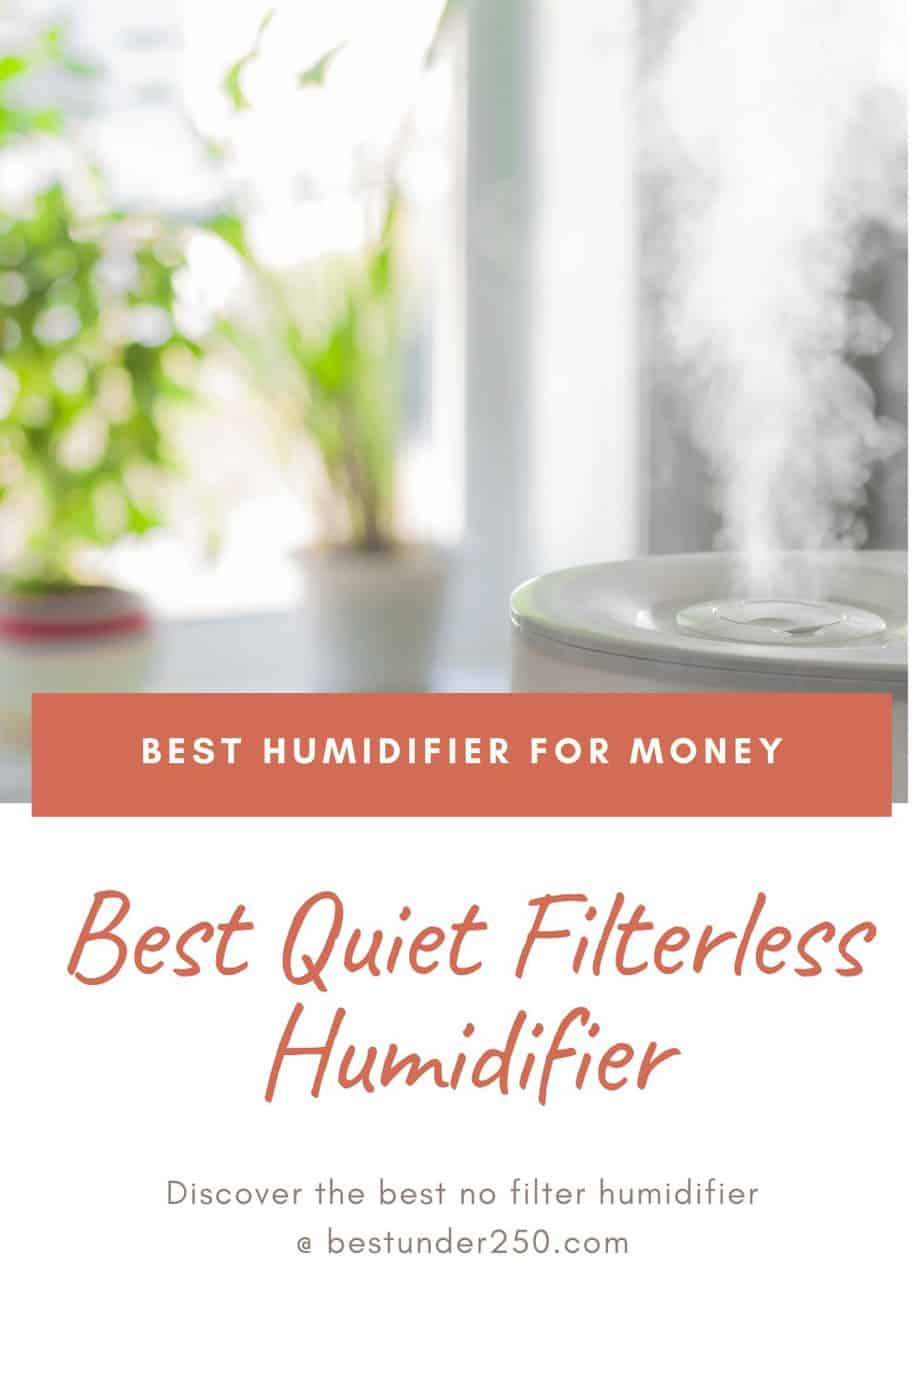 The best humidifier without a filter